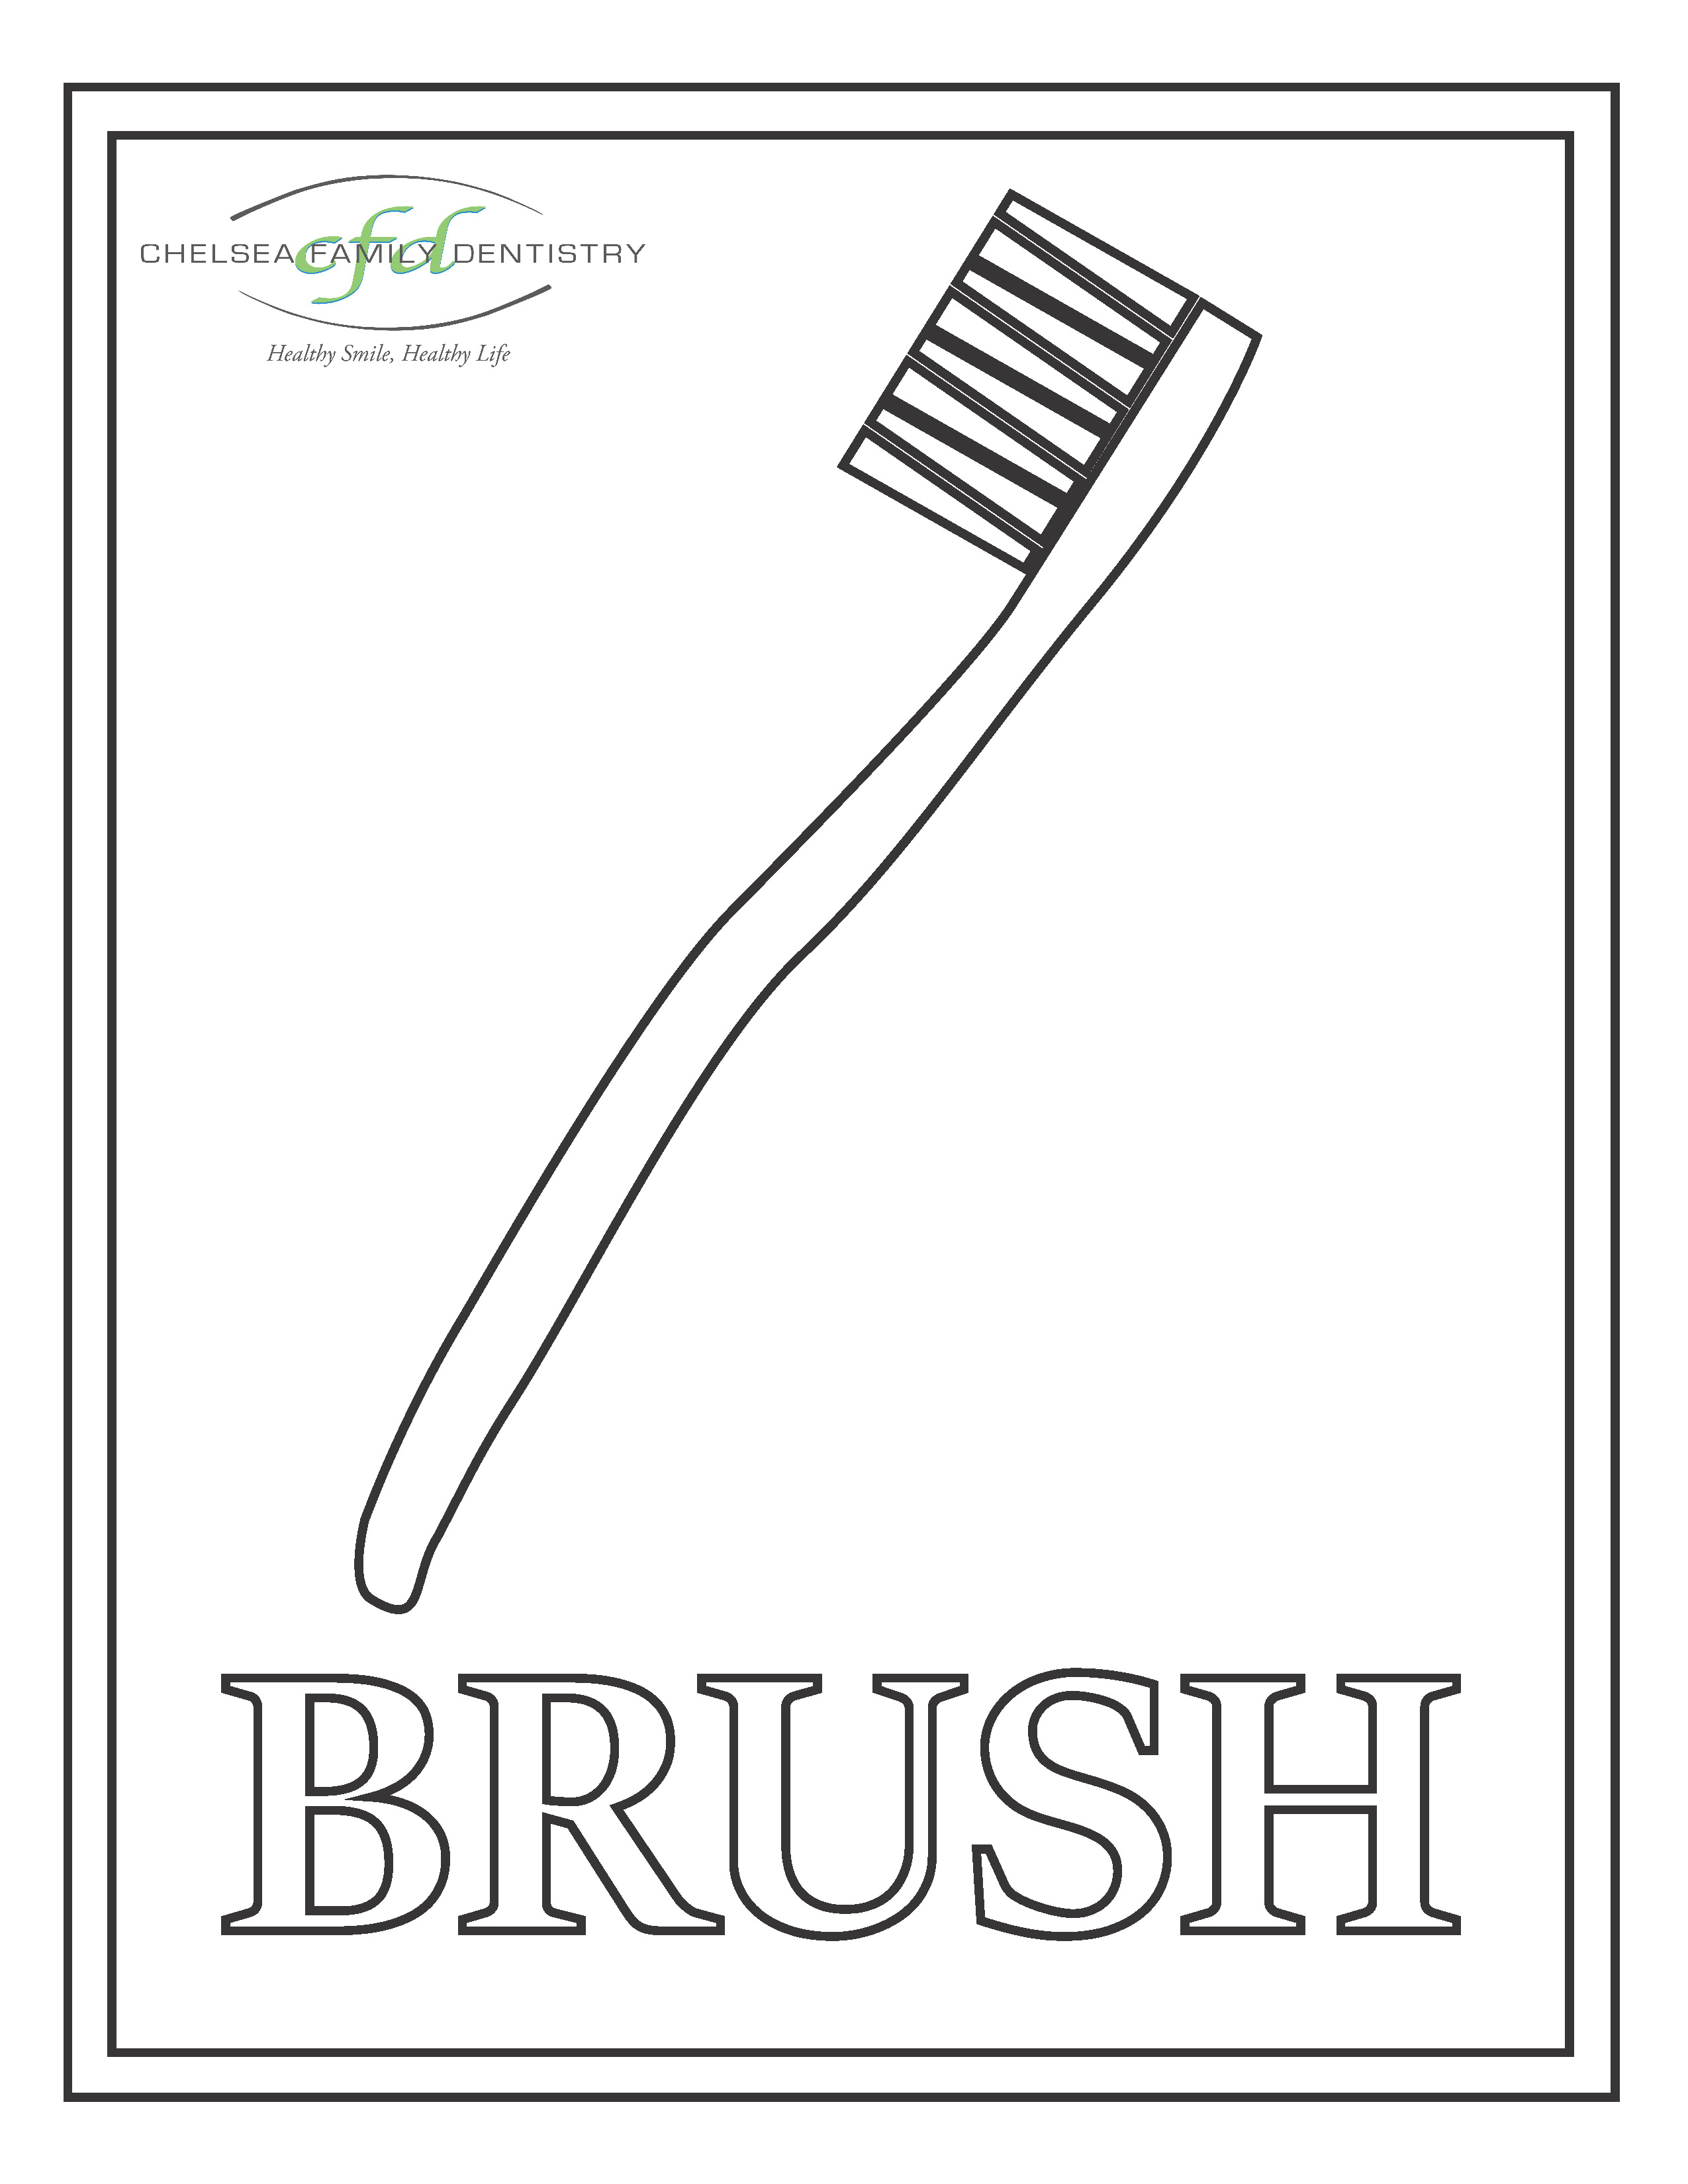 Toothbrush coloring page remarkable, very